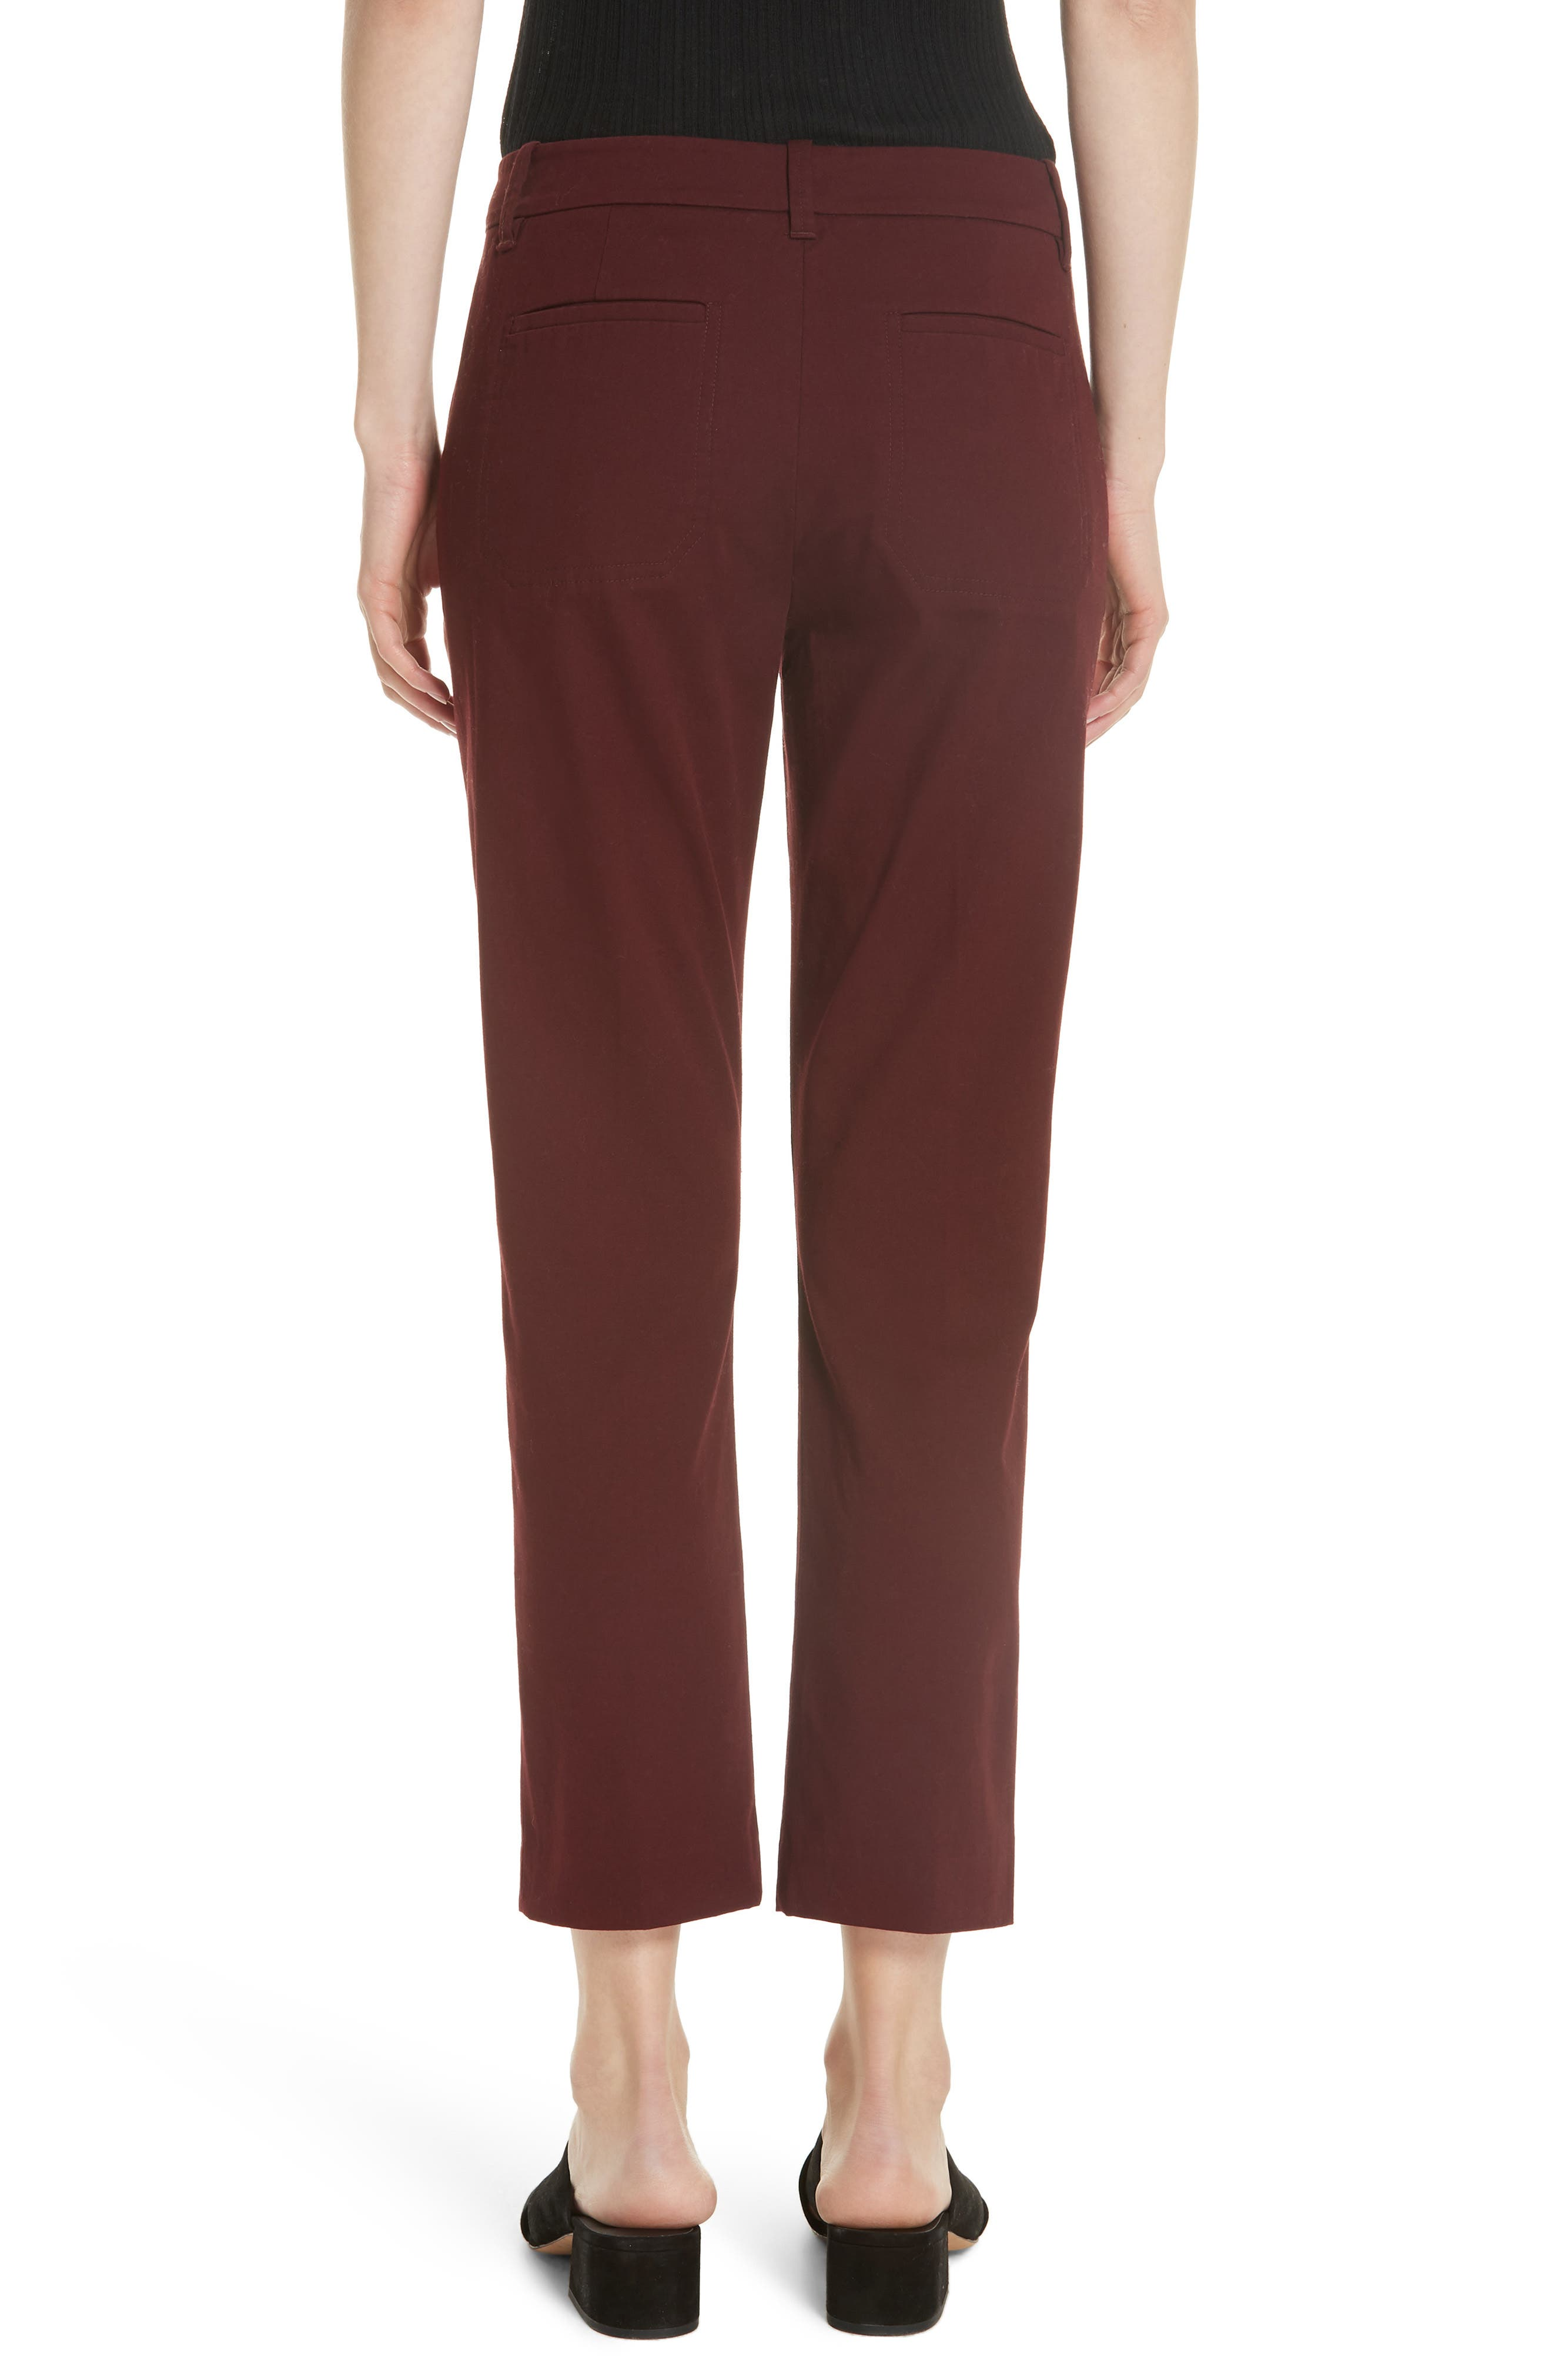 Coin Pocket Chino Pants,                             Alternate thumbnail 2, color,                             Black Cherry